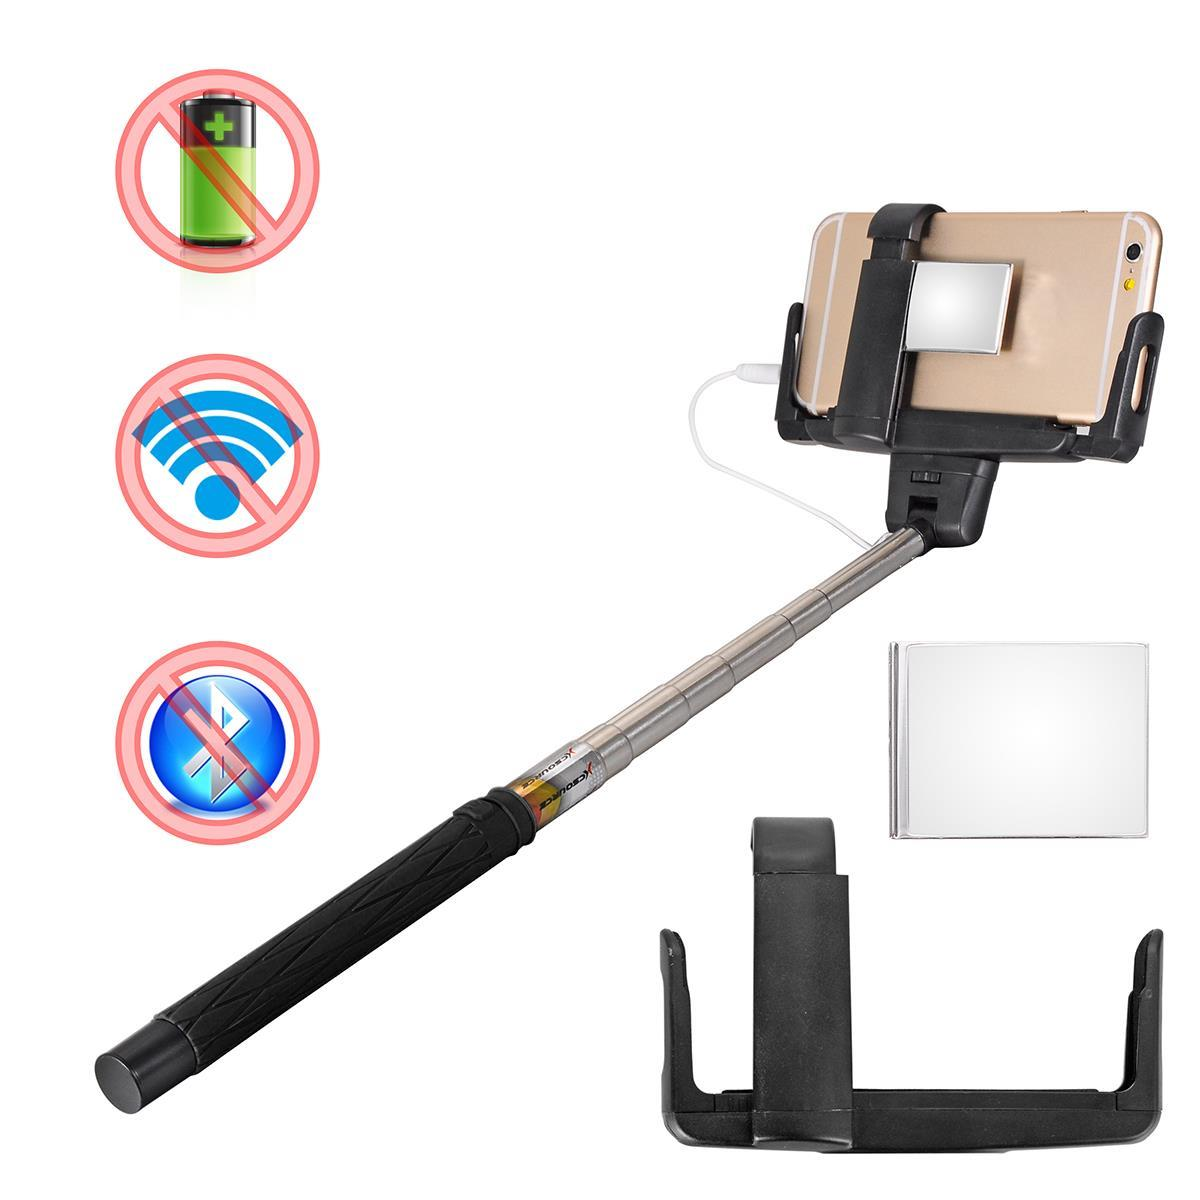 xcsource black selfietripod flexible wired control selfie stick extendable handheld monopod. Black Bedroom Furniture Sets. Home Design Ideas